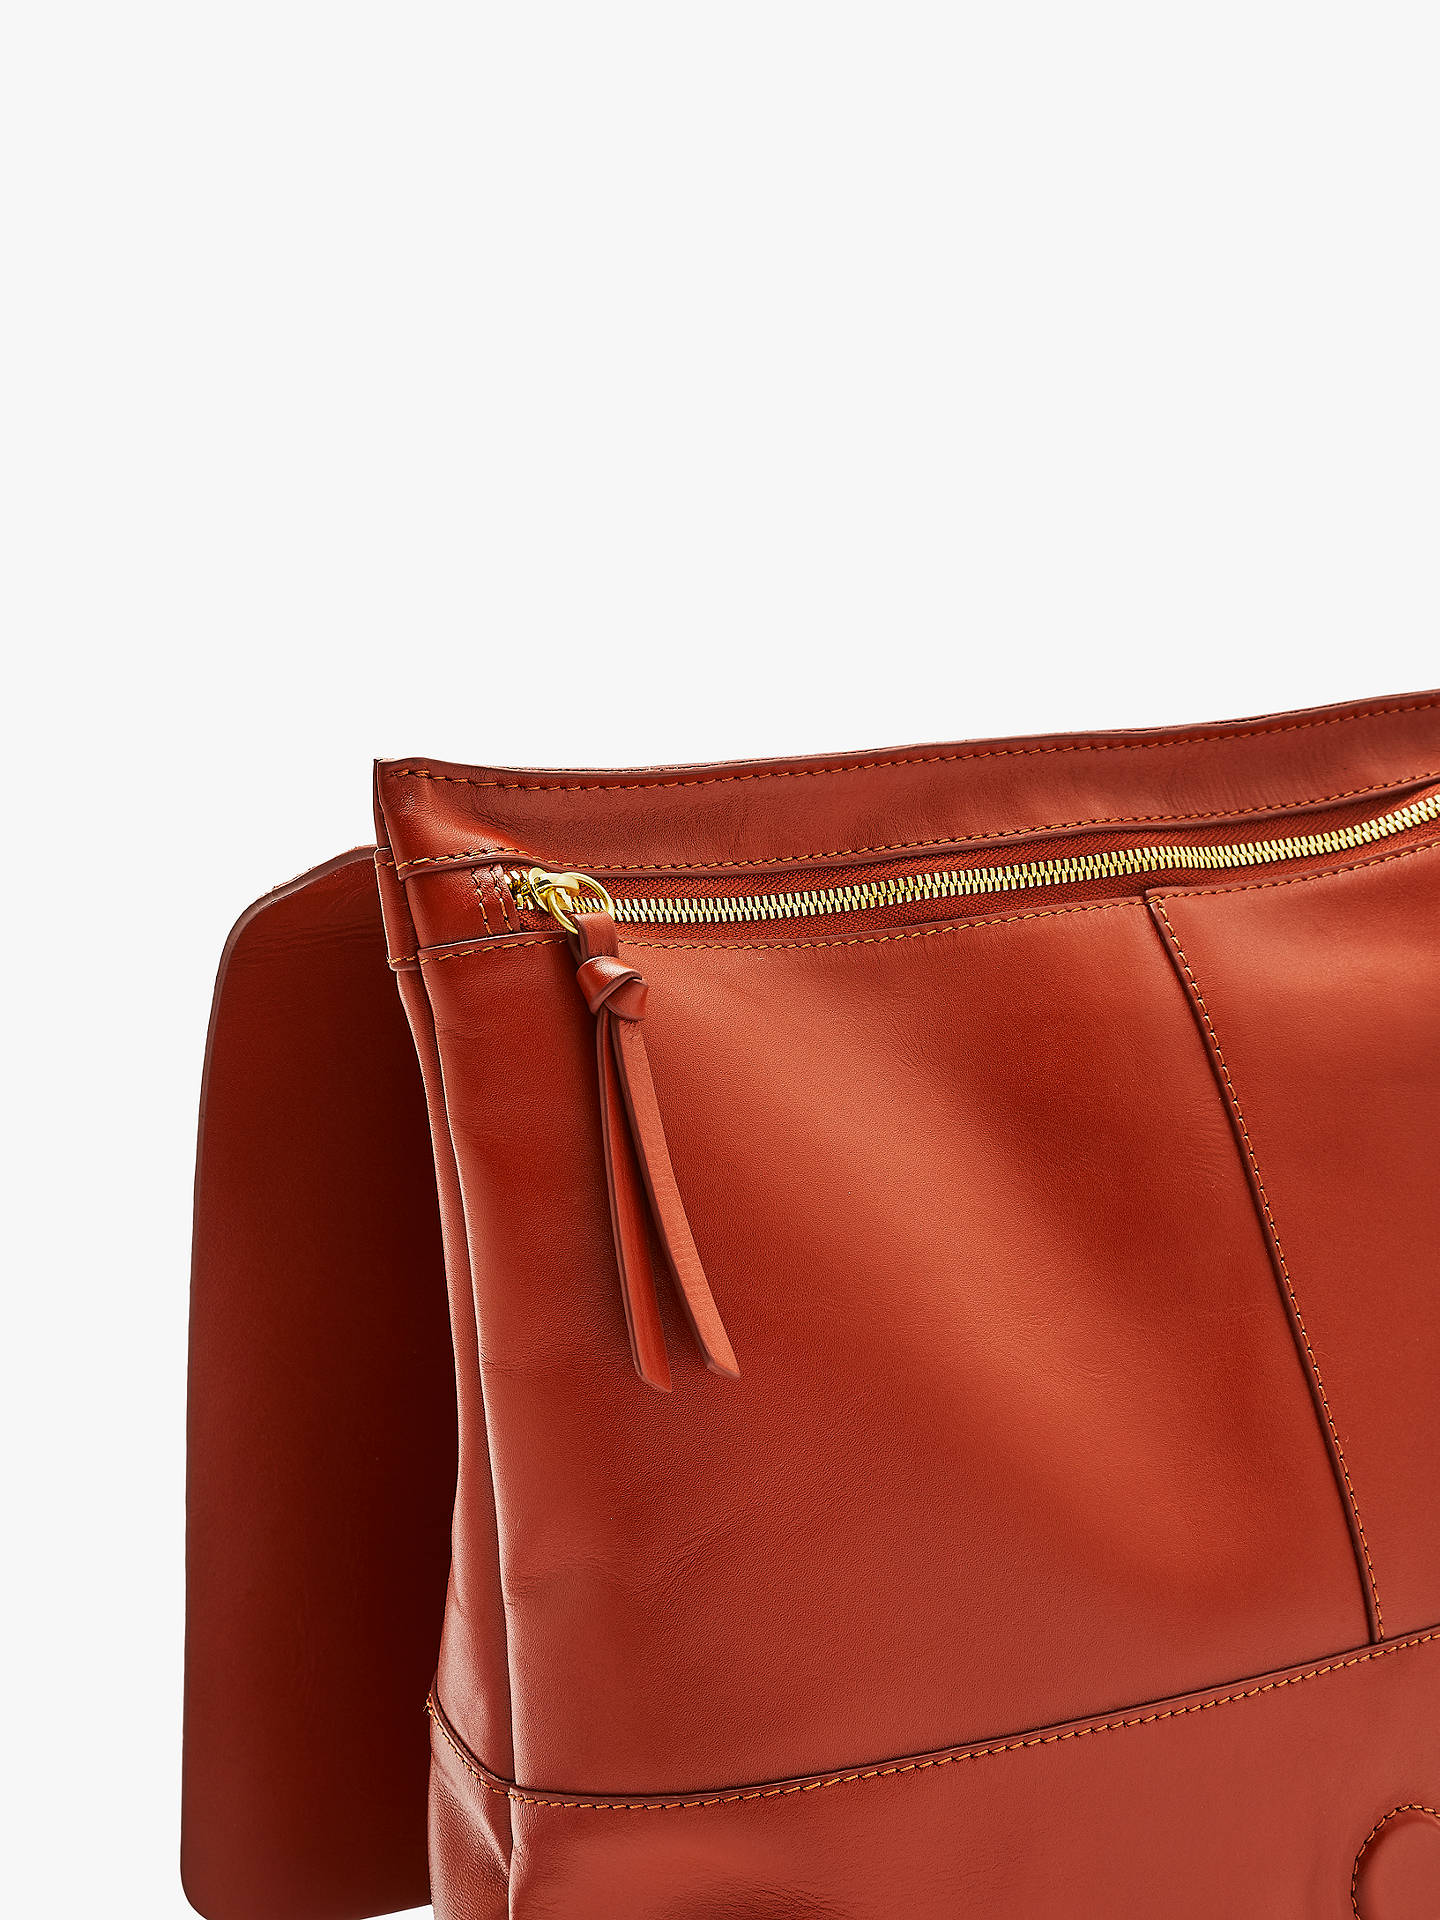 BuyJohn Lewis & Partners Alina Leather Slim Backpack, Bossa Nova Rust Online at johnlewis.com